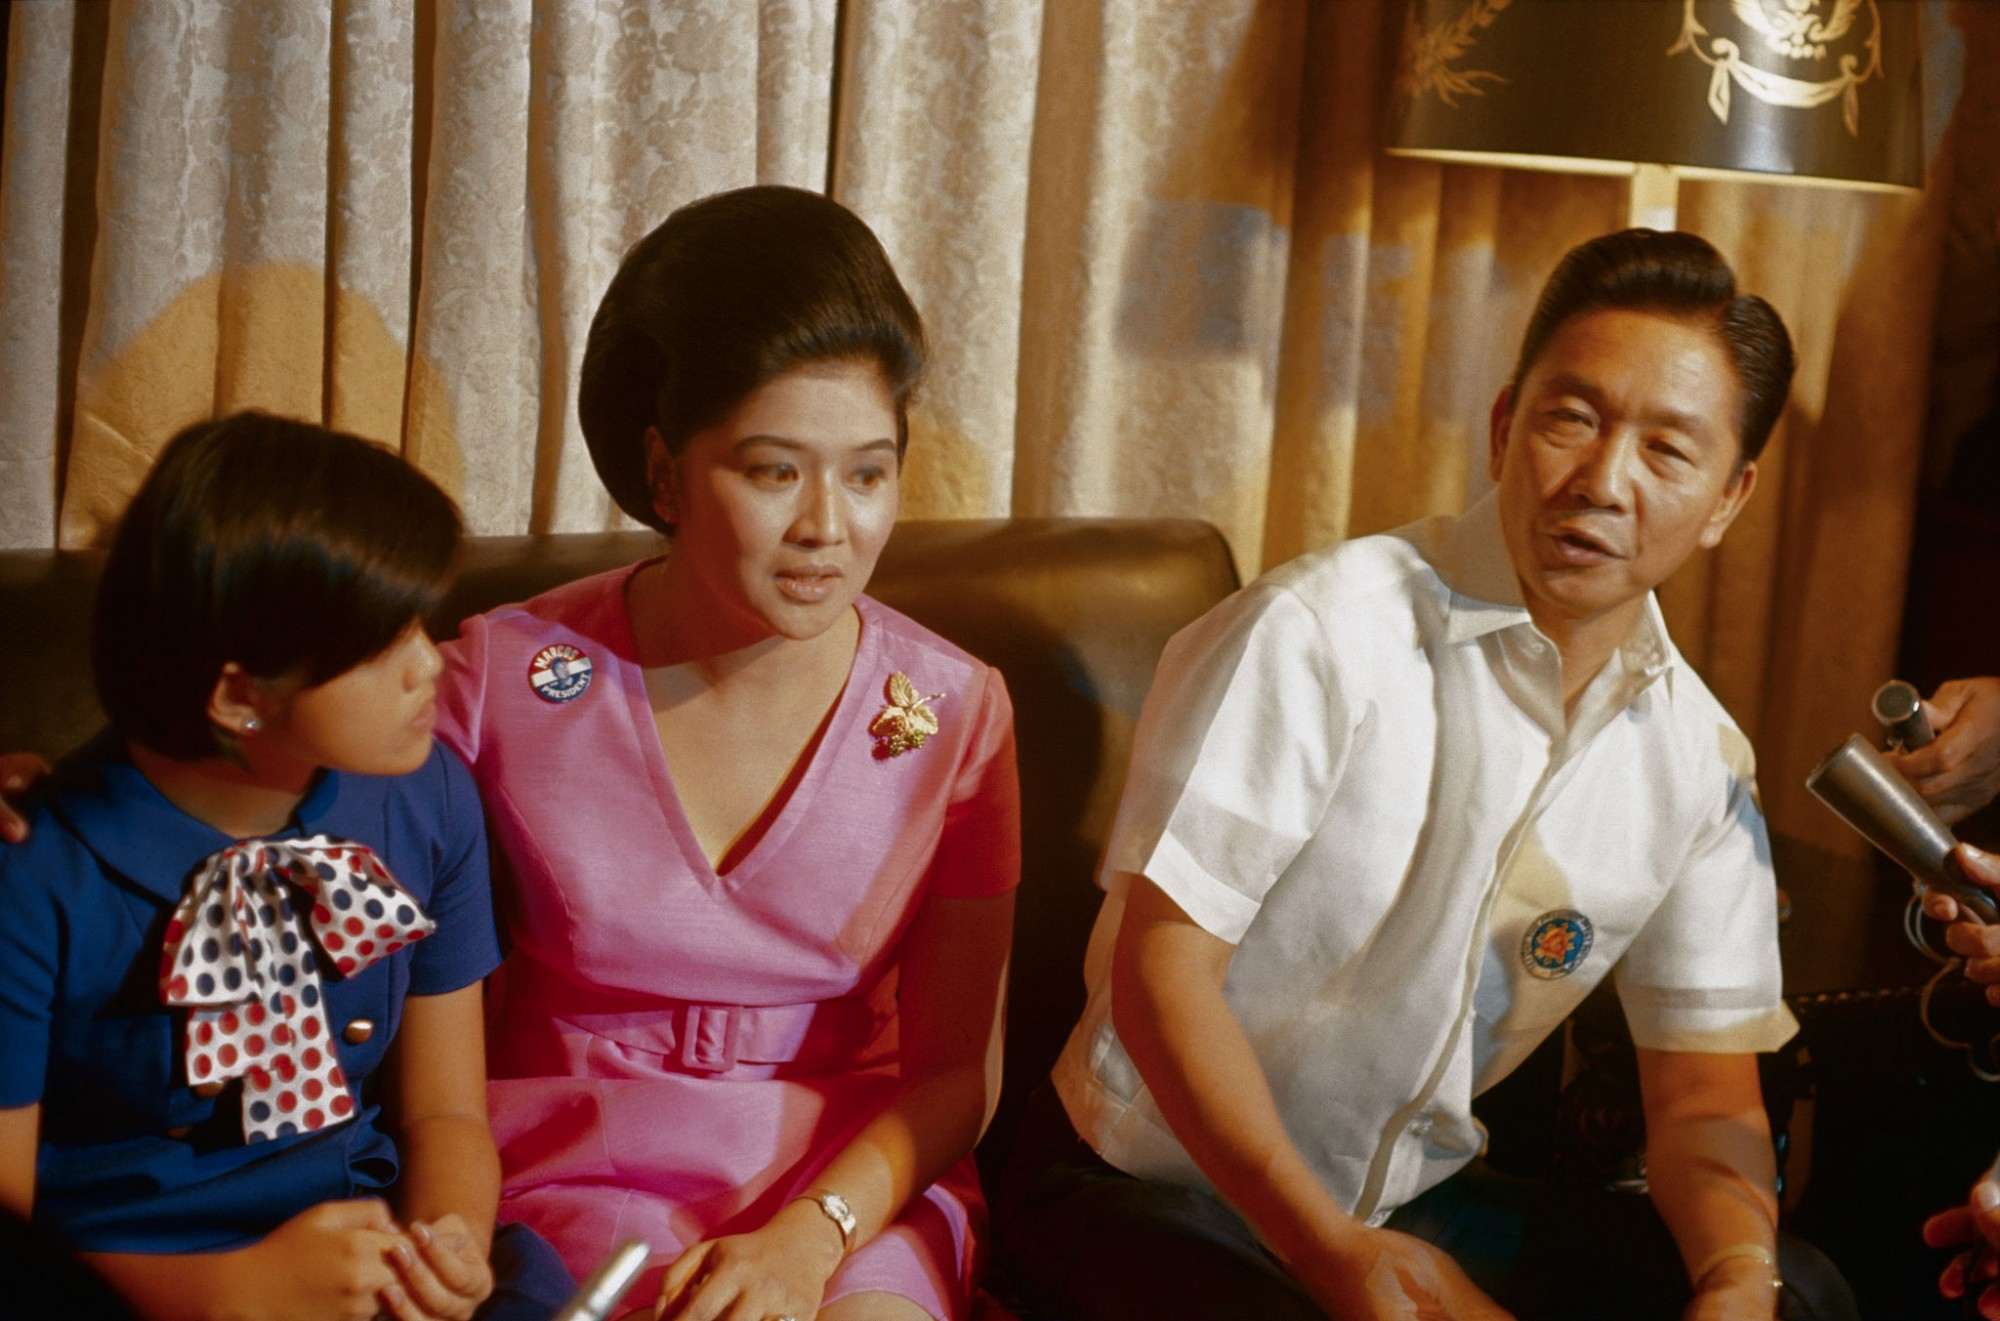 1969 Philippines President Ferdinand E. Marcos and his family are shown during interview with foreign and local newsmen at Malacanang Palace